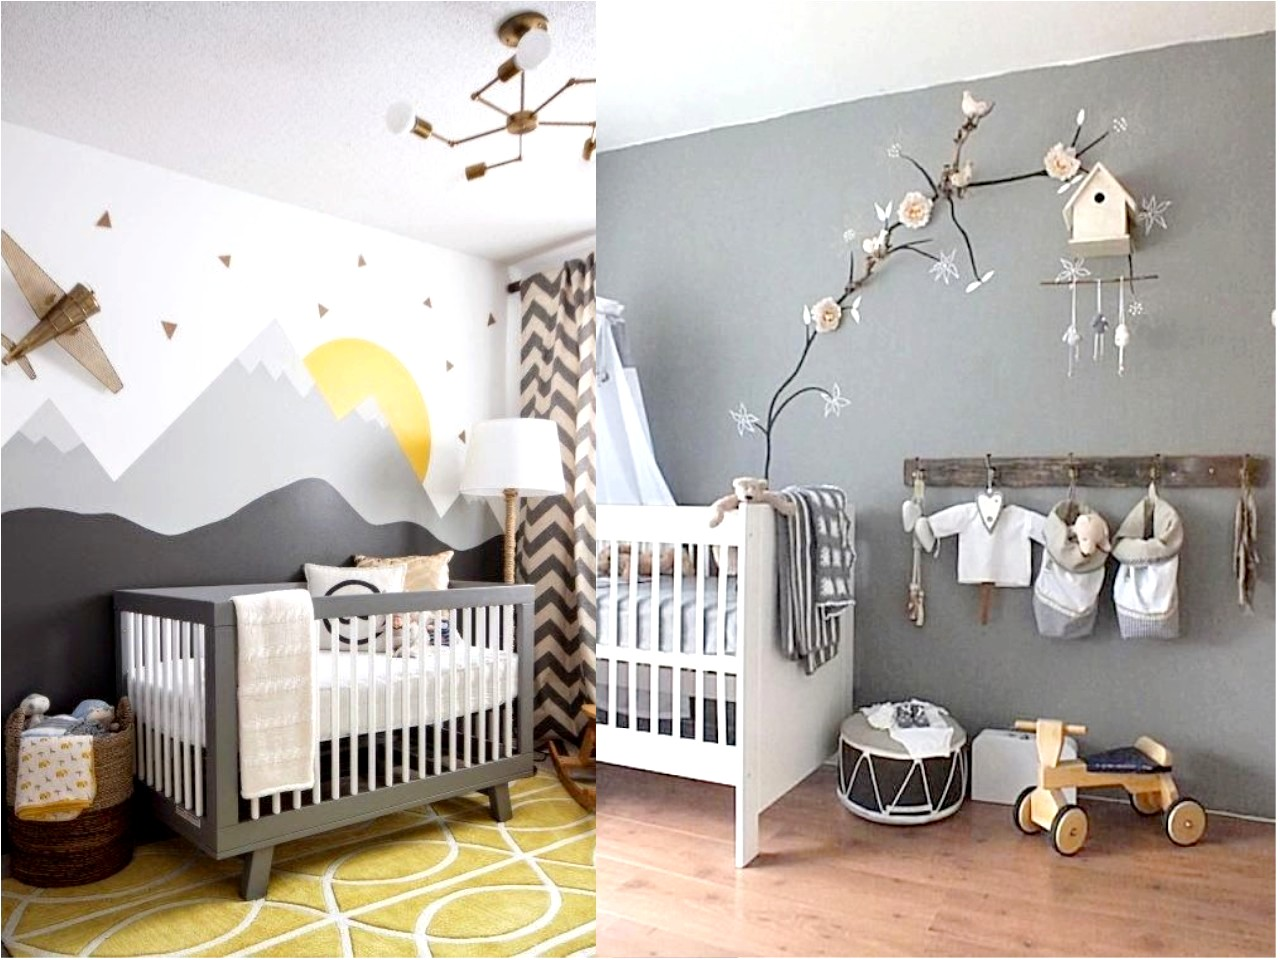 7 tips para aprender c mo decorar una habitaci n de beb for Decoracion para paredes infantiles